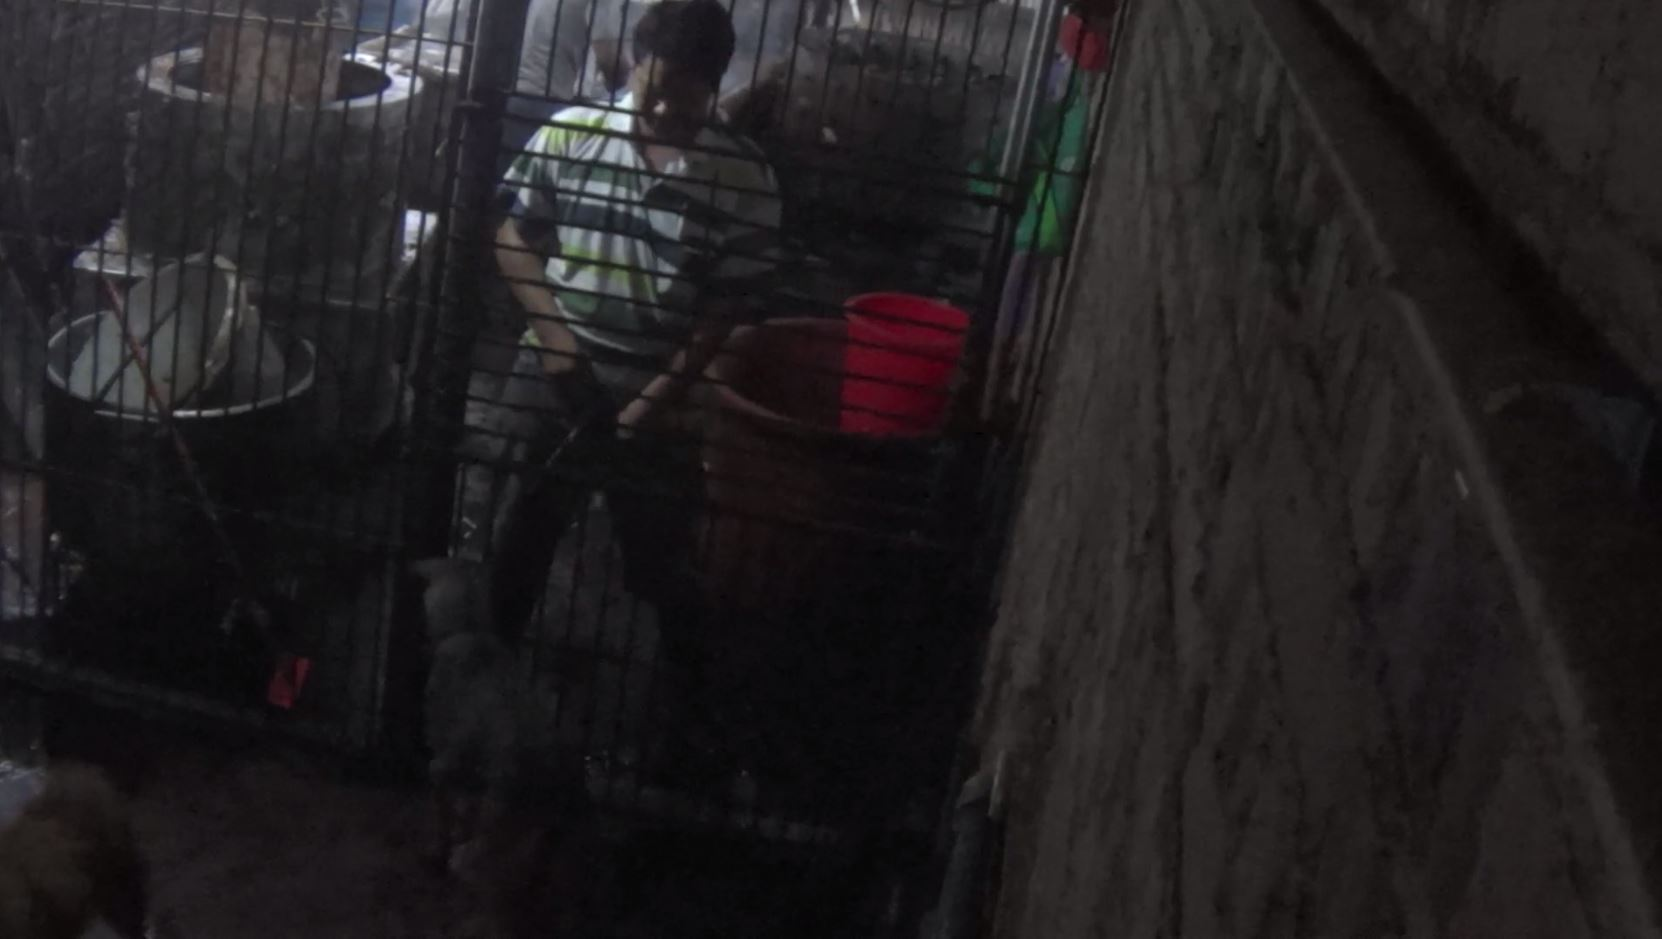 Workers treat the dogs with little respect. Here a man urinates on a dog through the cage.